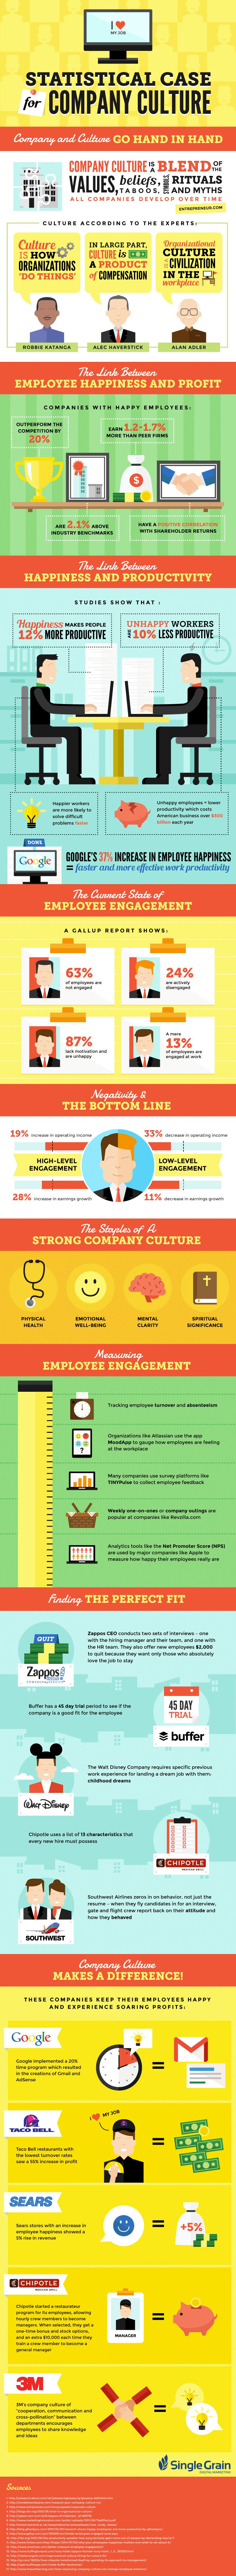 Happy Employees Make Better Companies